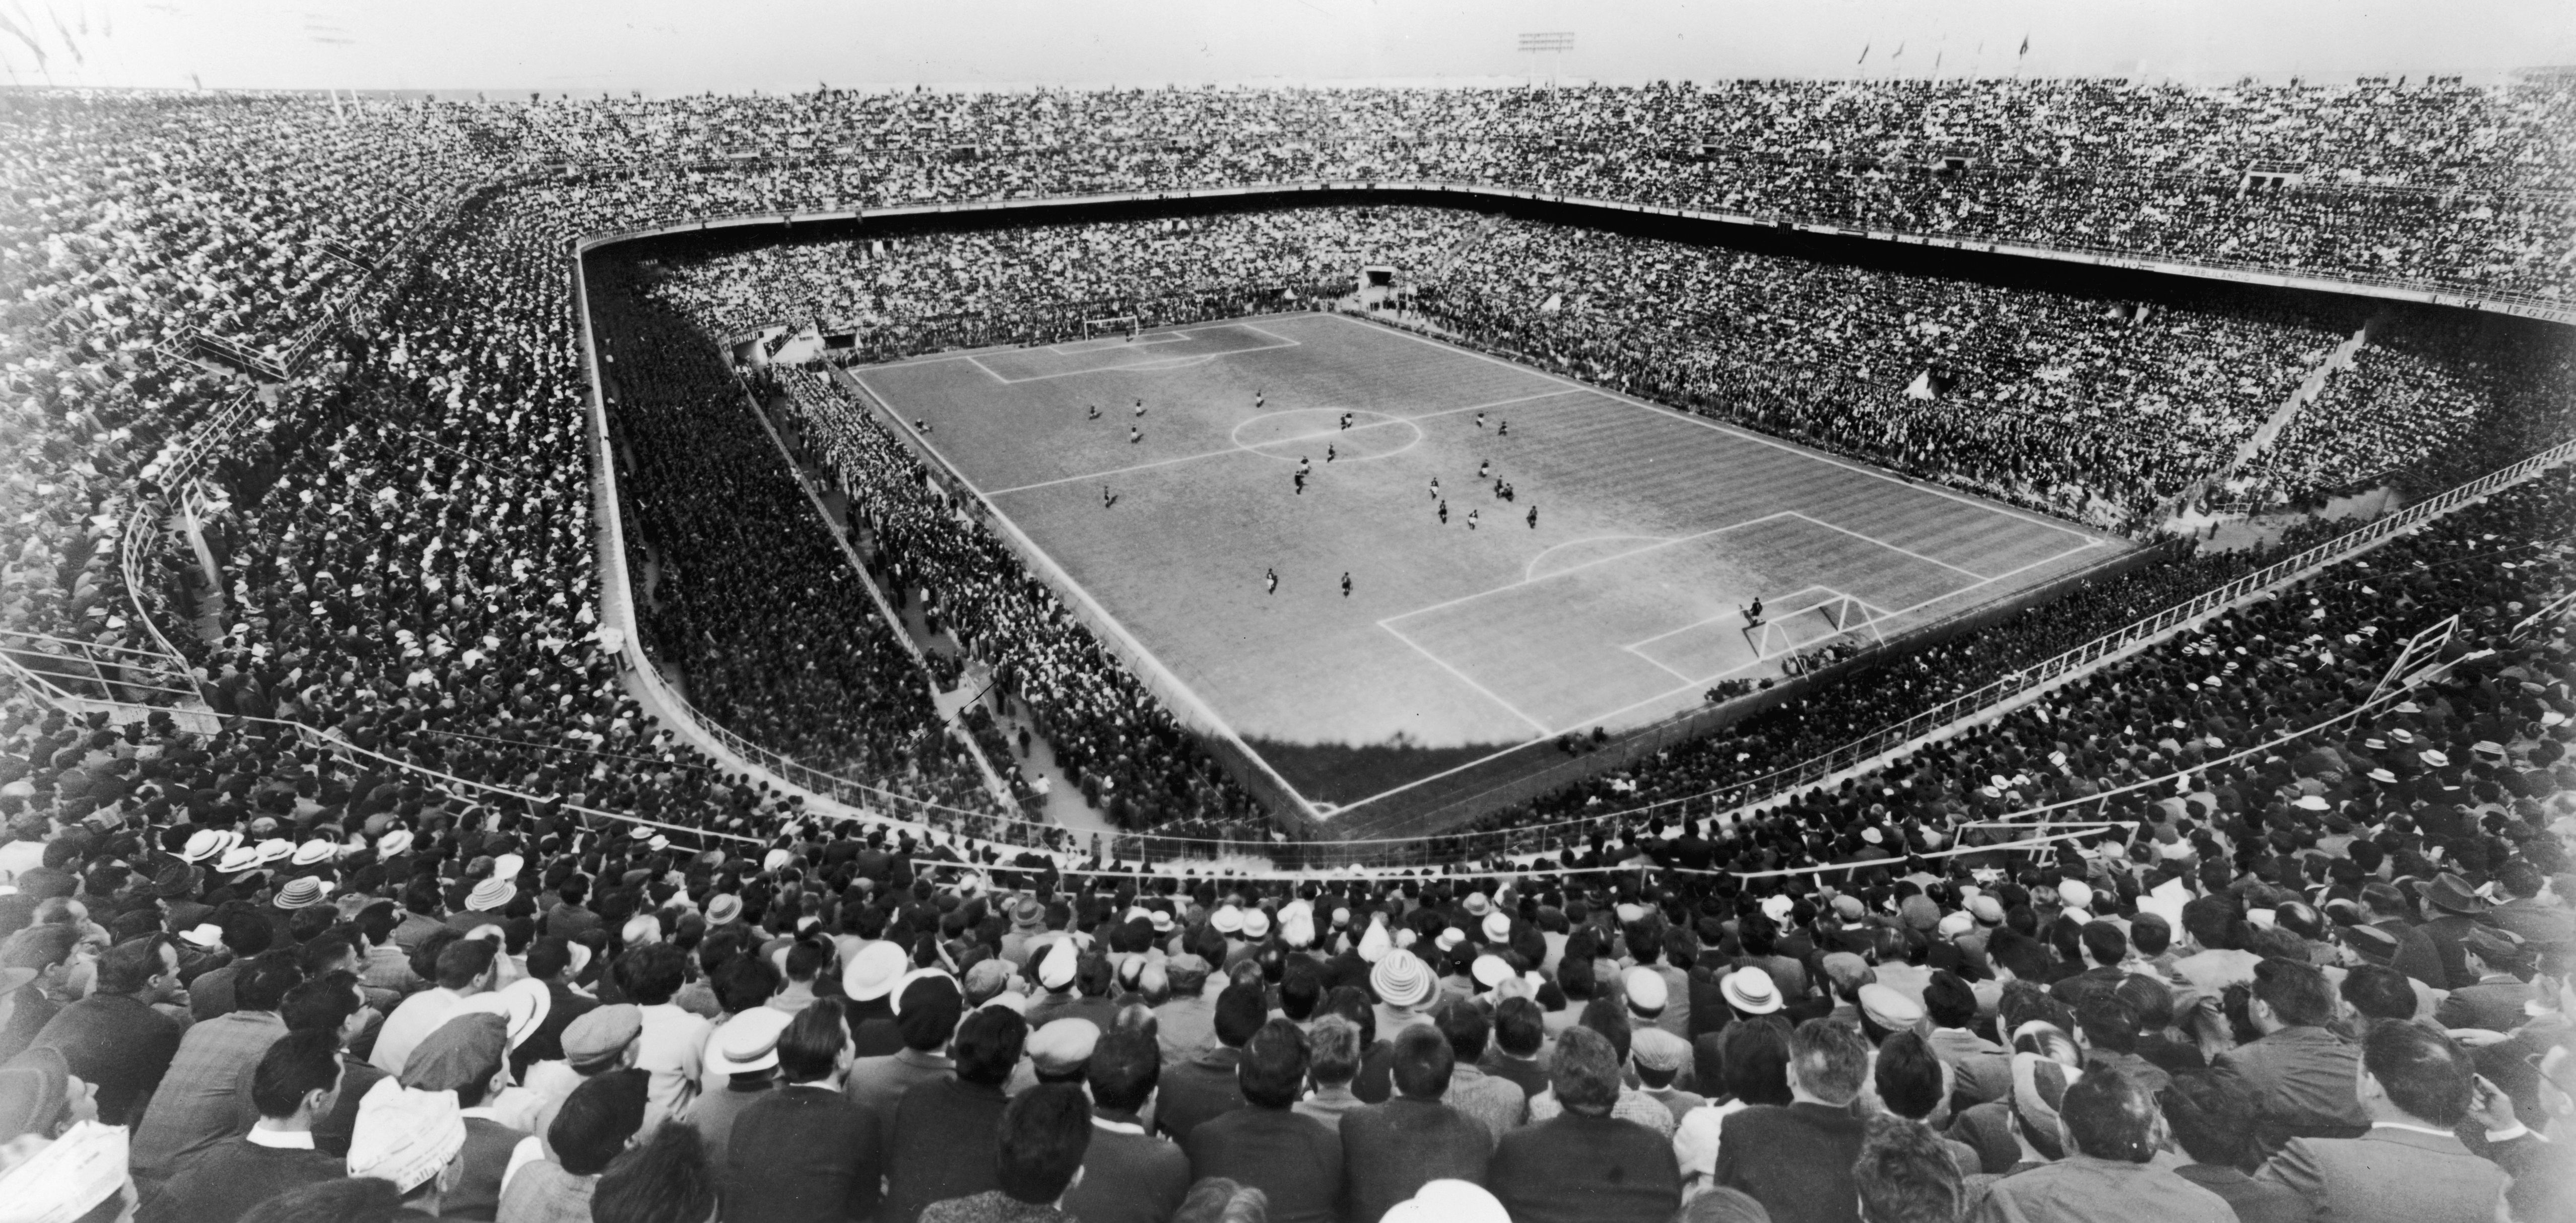 A large crowd watching a football match at the San Siro Stadium in Milan, originally built in 1926. (Photo by Keystone/Getty Images)